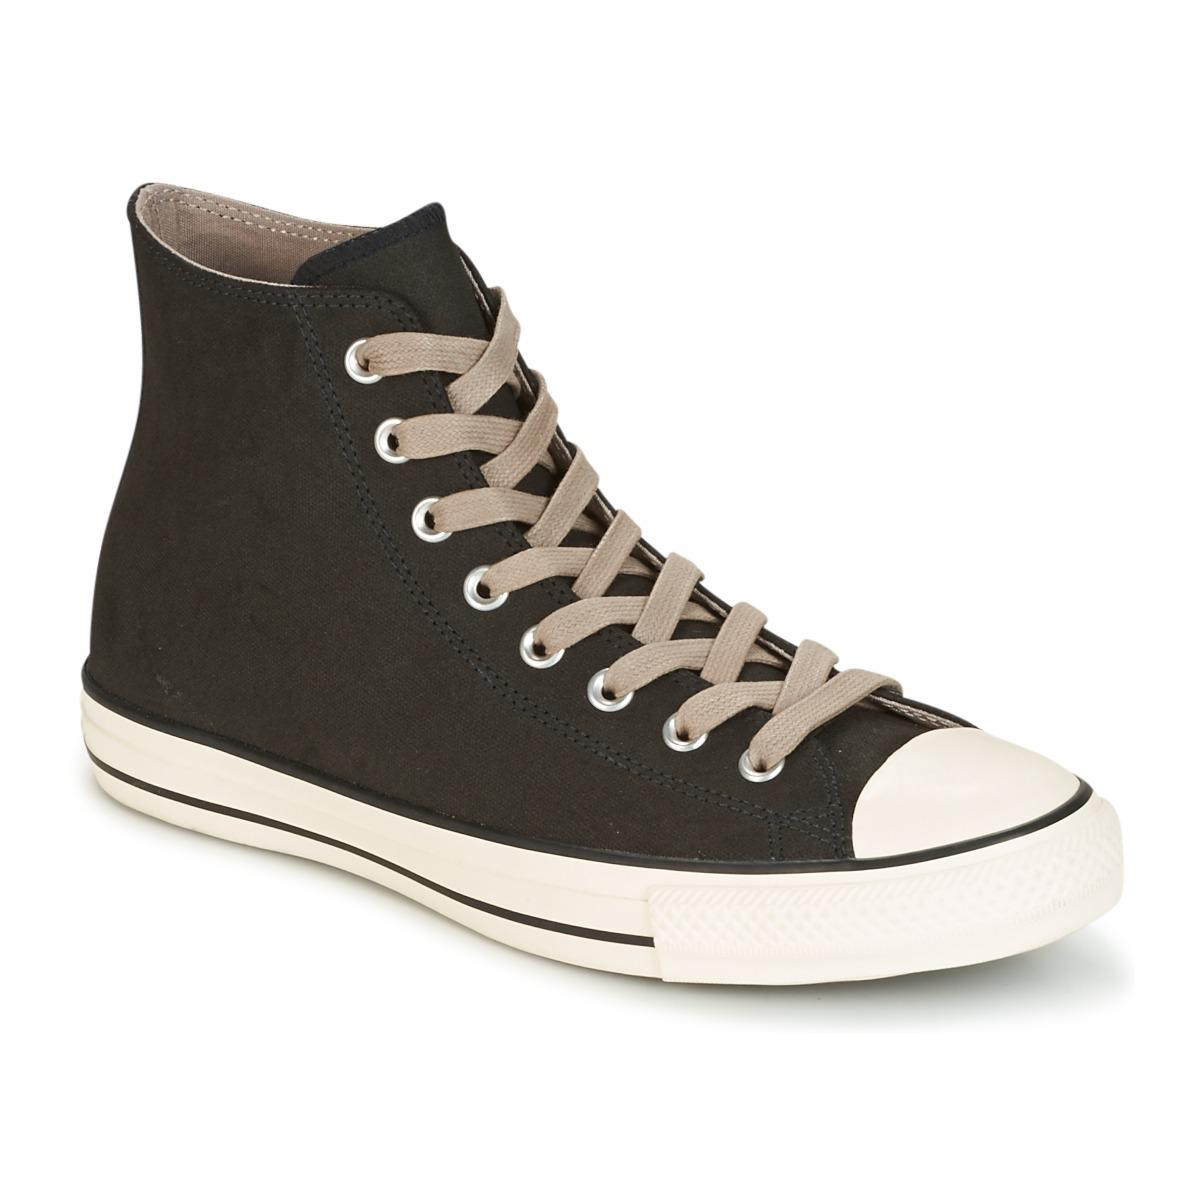 ace0708fd78 Lyst - Converse Chuck Taylor All Star Coated Leather Hi Black malted ...